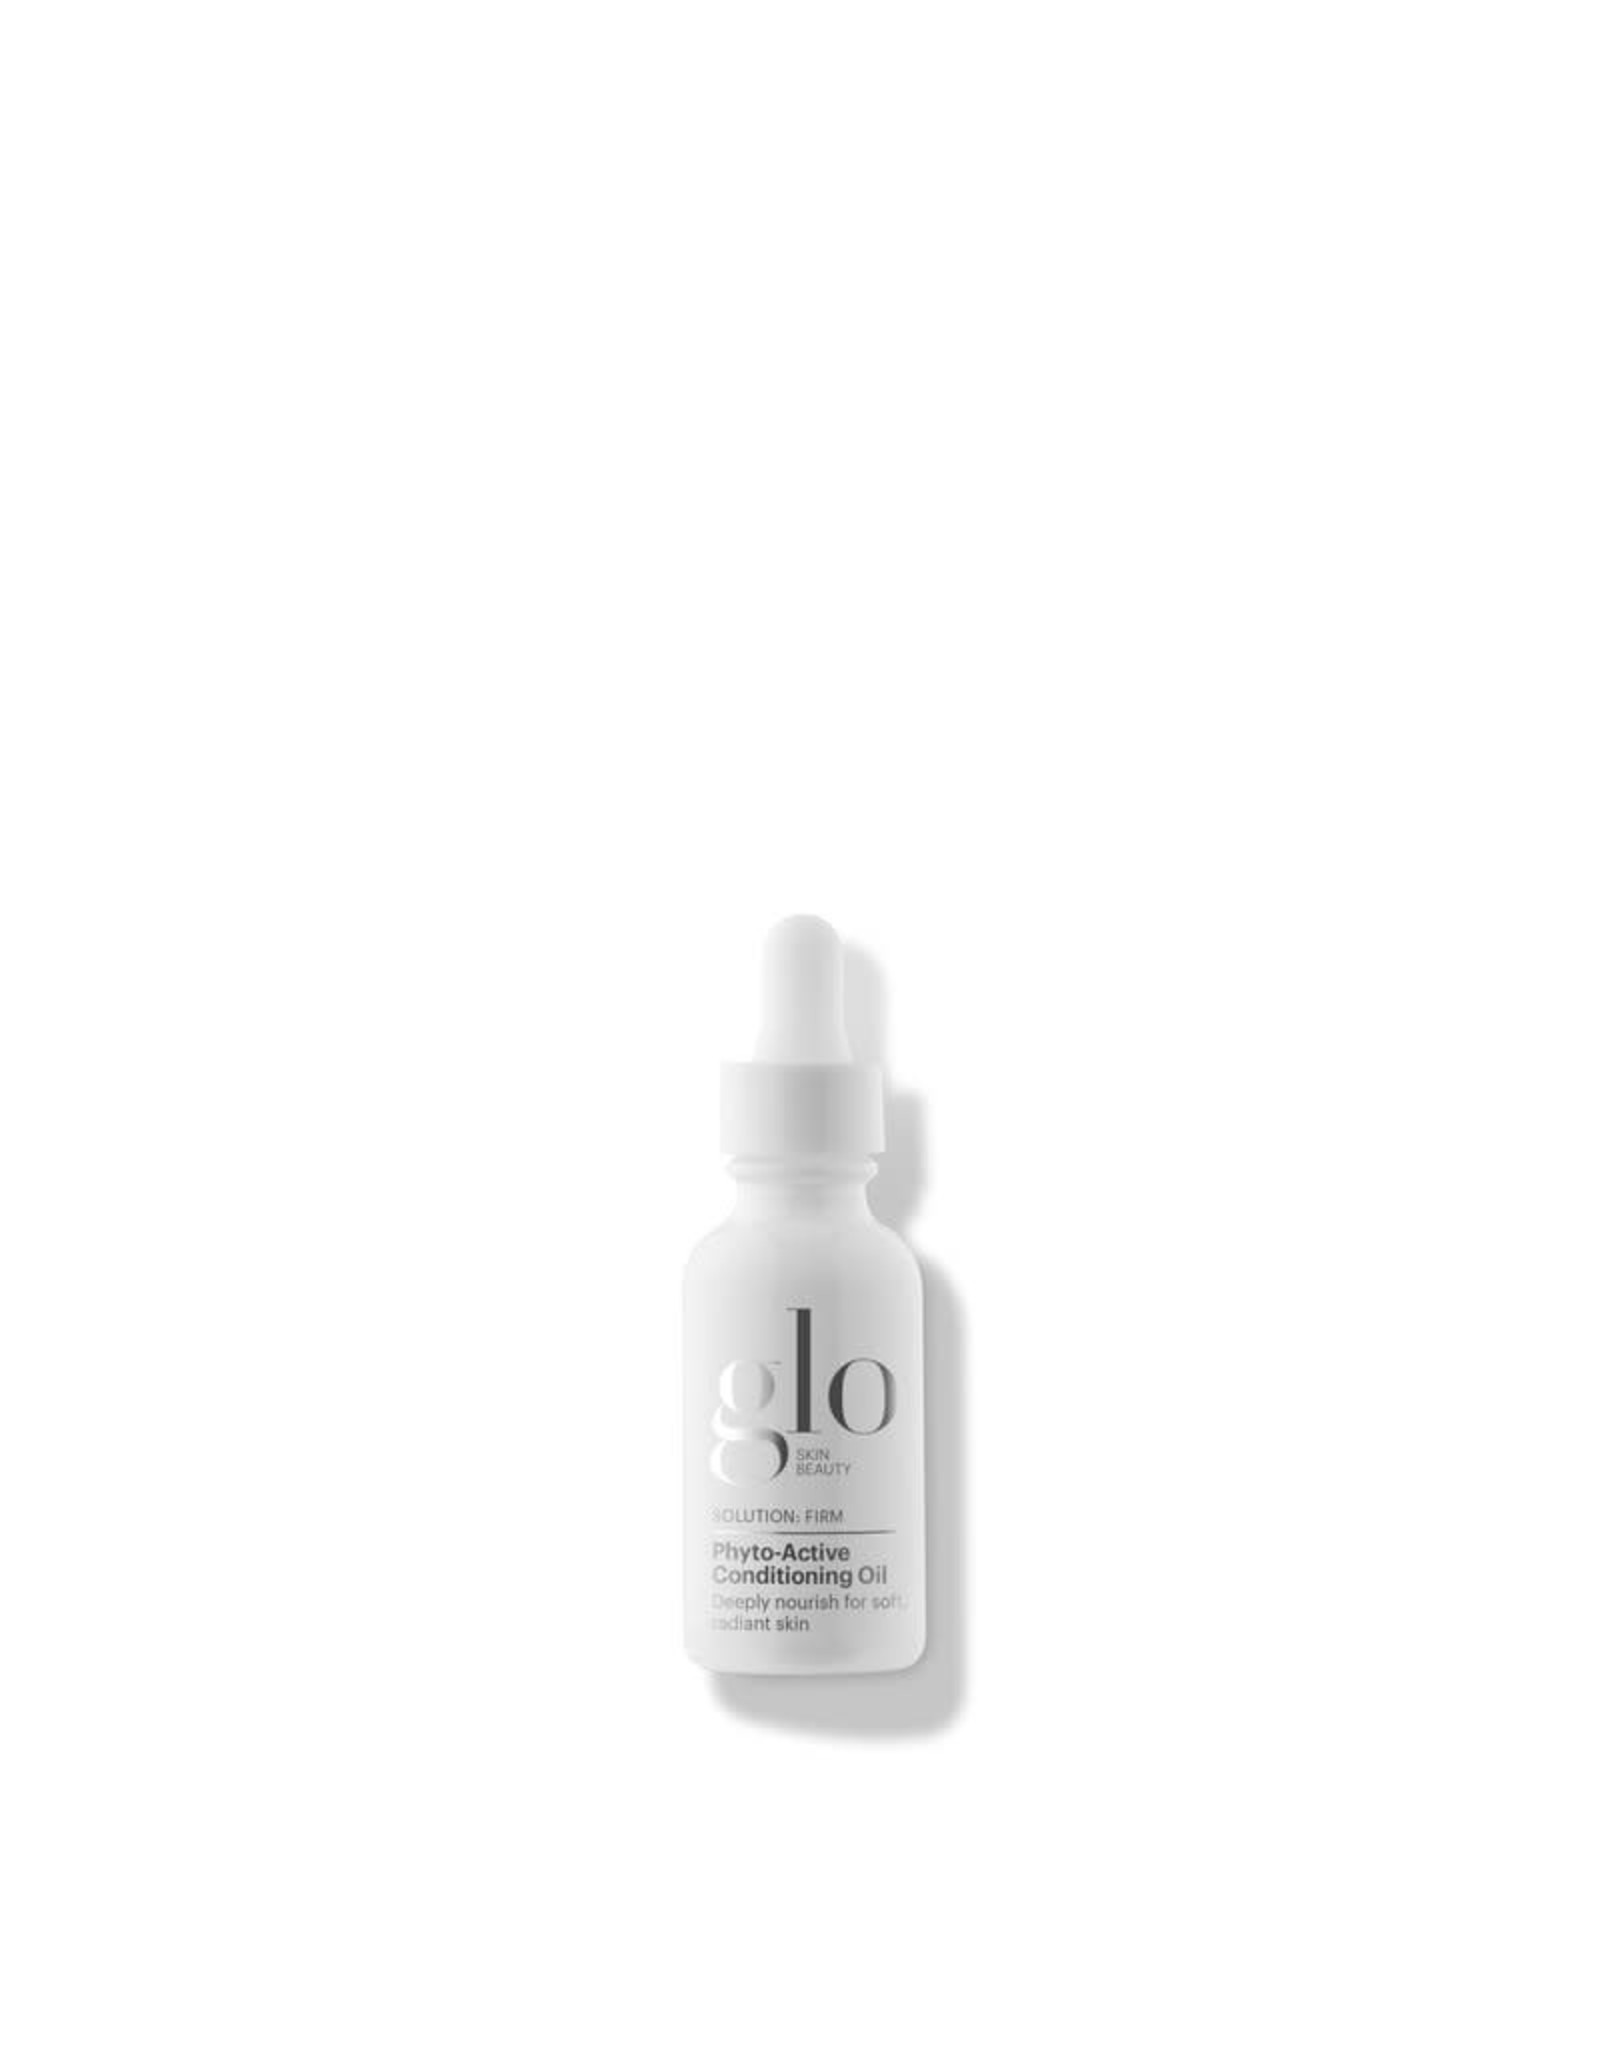 Glo Skin Beauty Phyto-Active Conditioning Oil